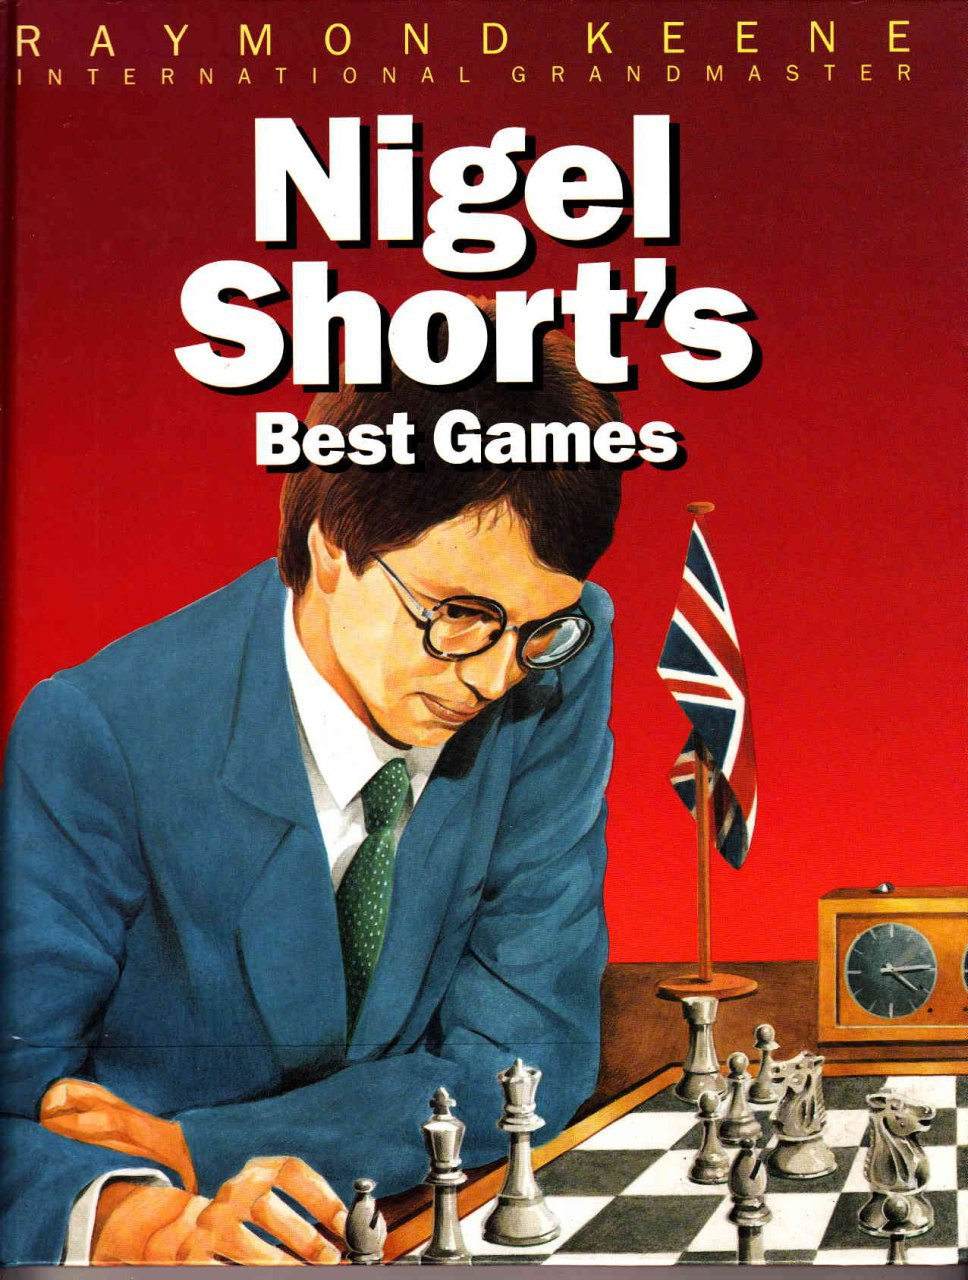 Raymond Keene_Nigel Short's Best Games PDF Img_2060